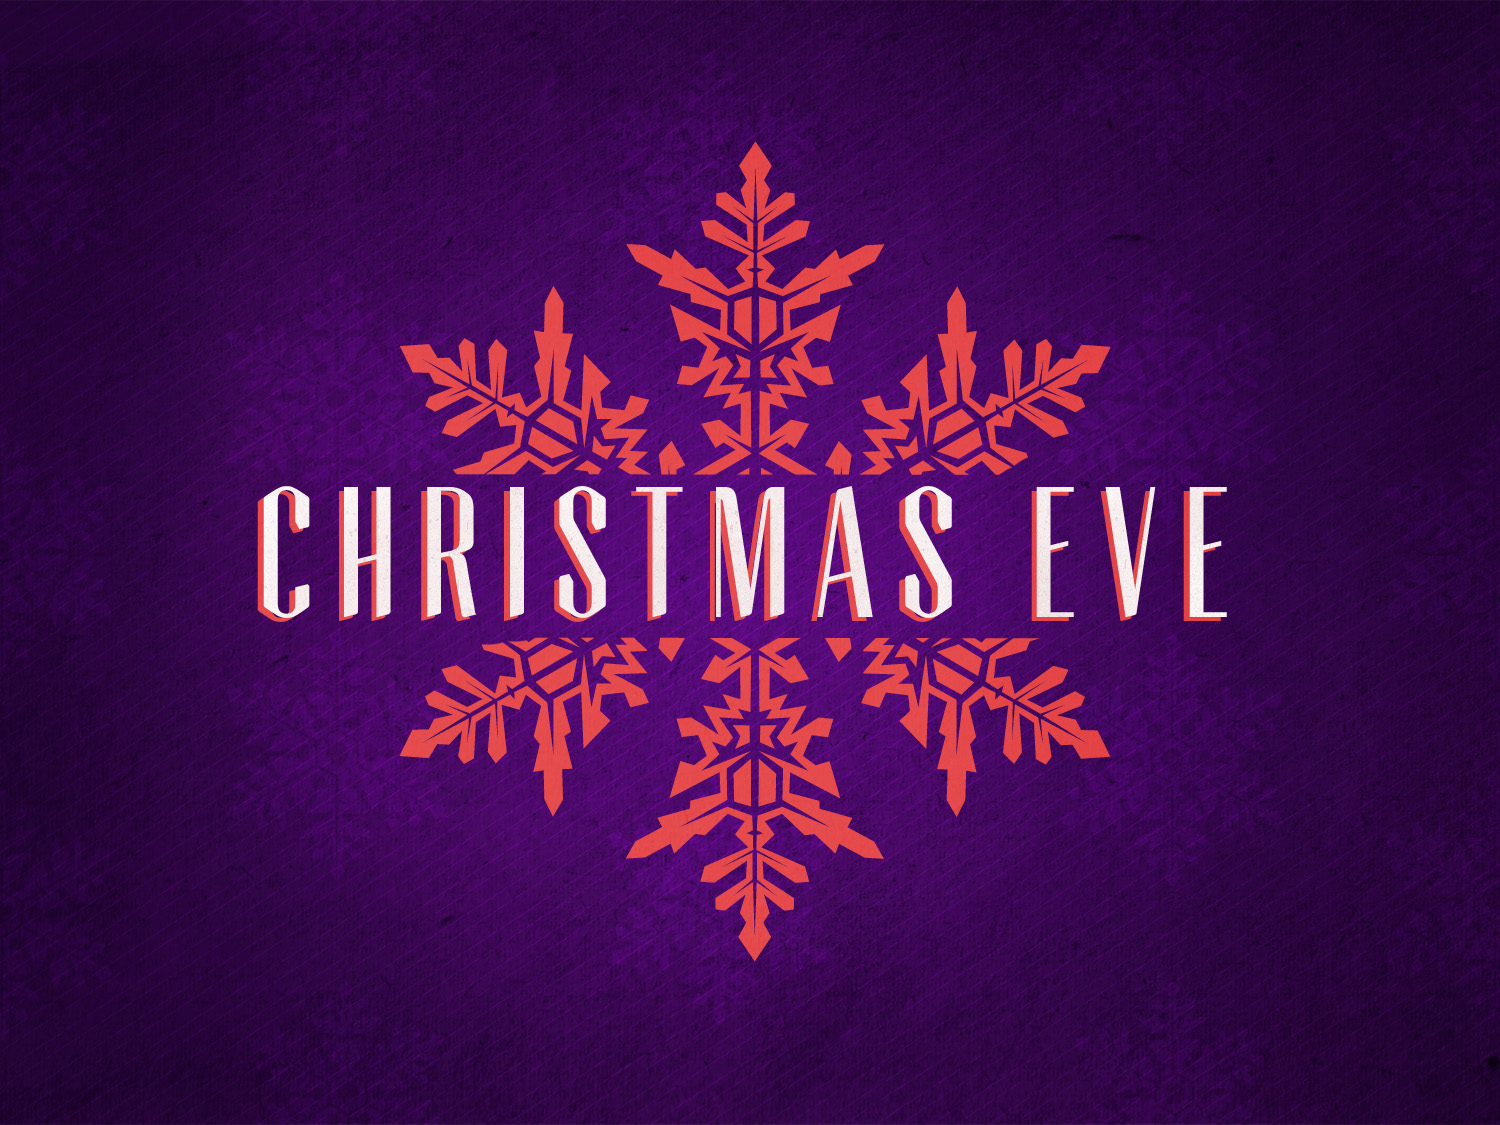 What is Christmas Eve 92